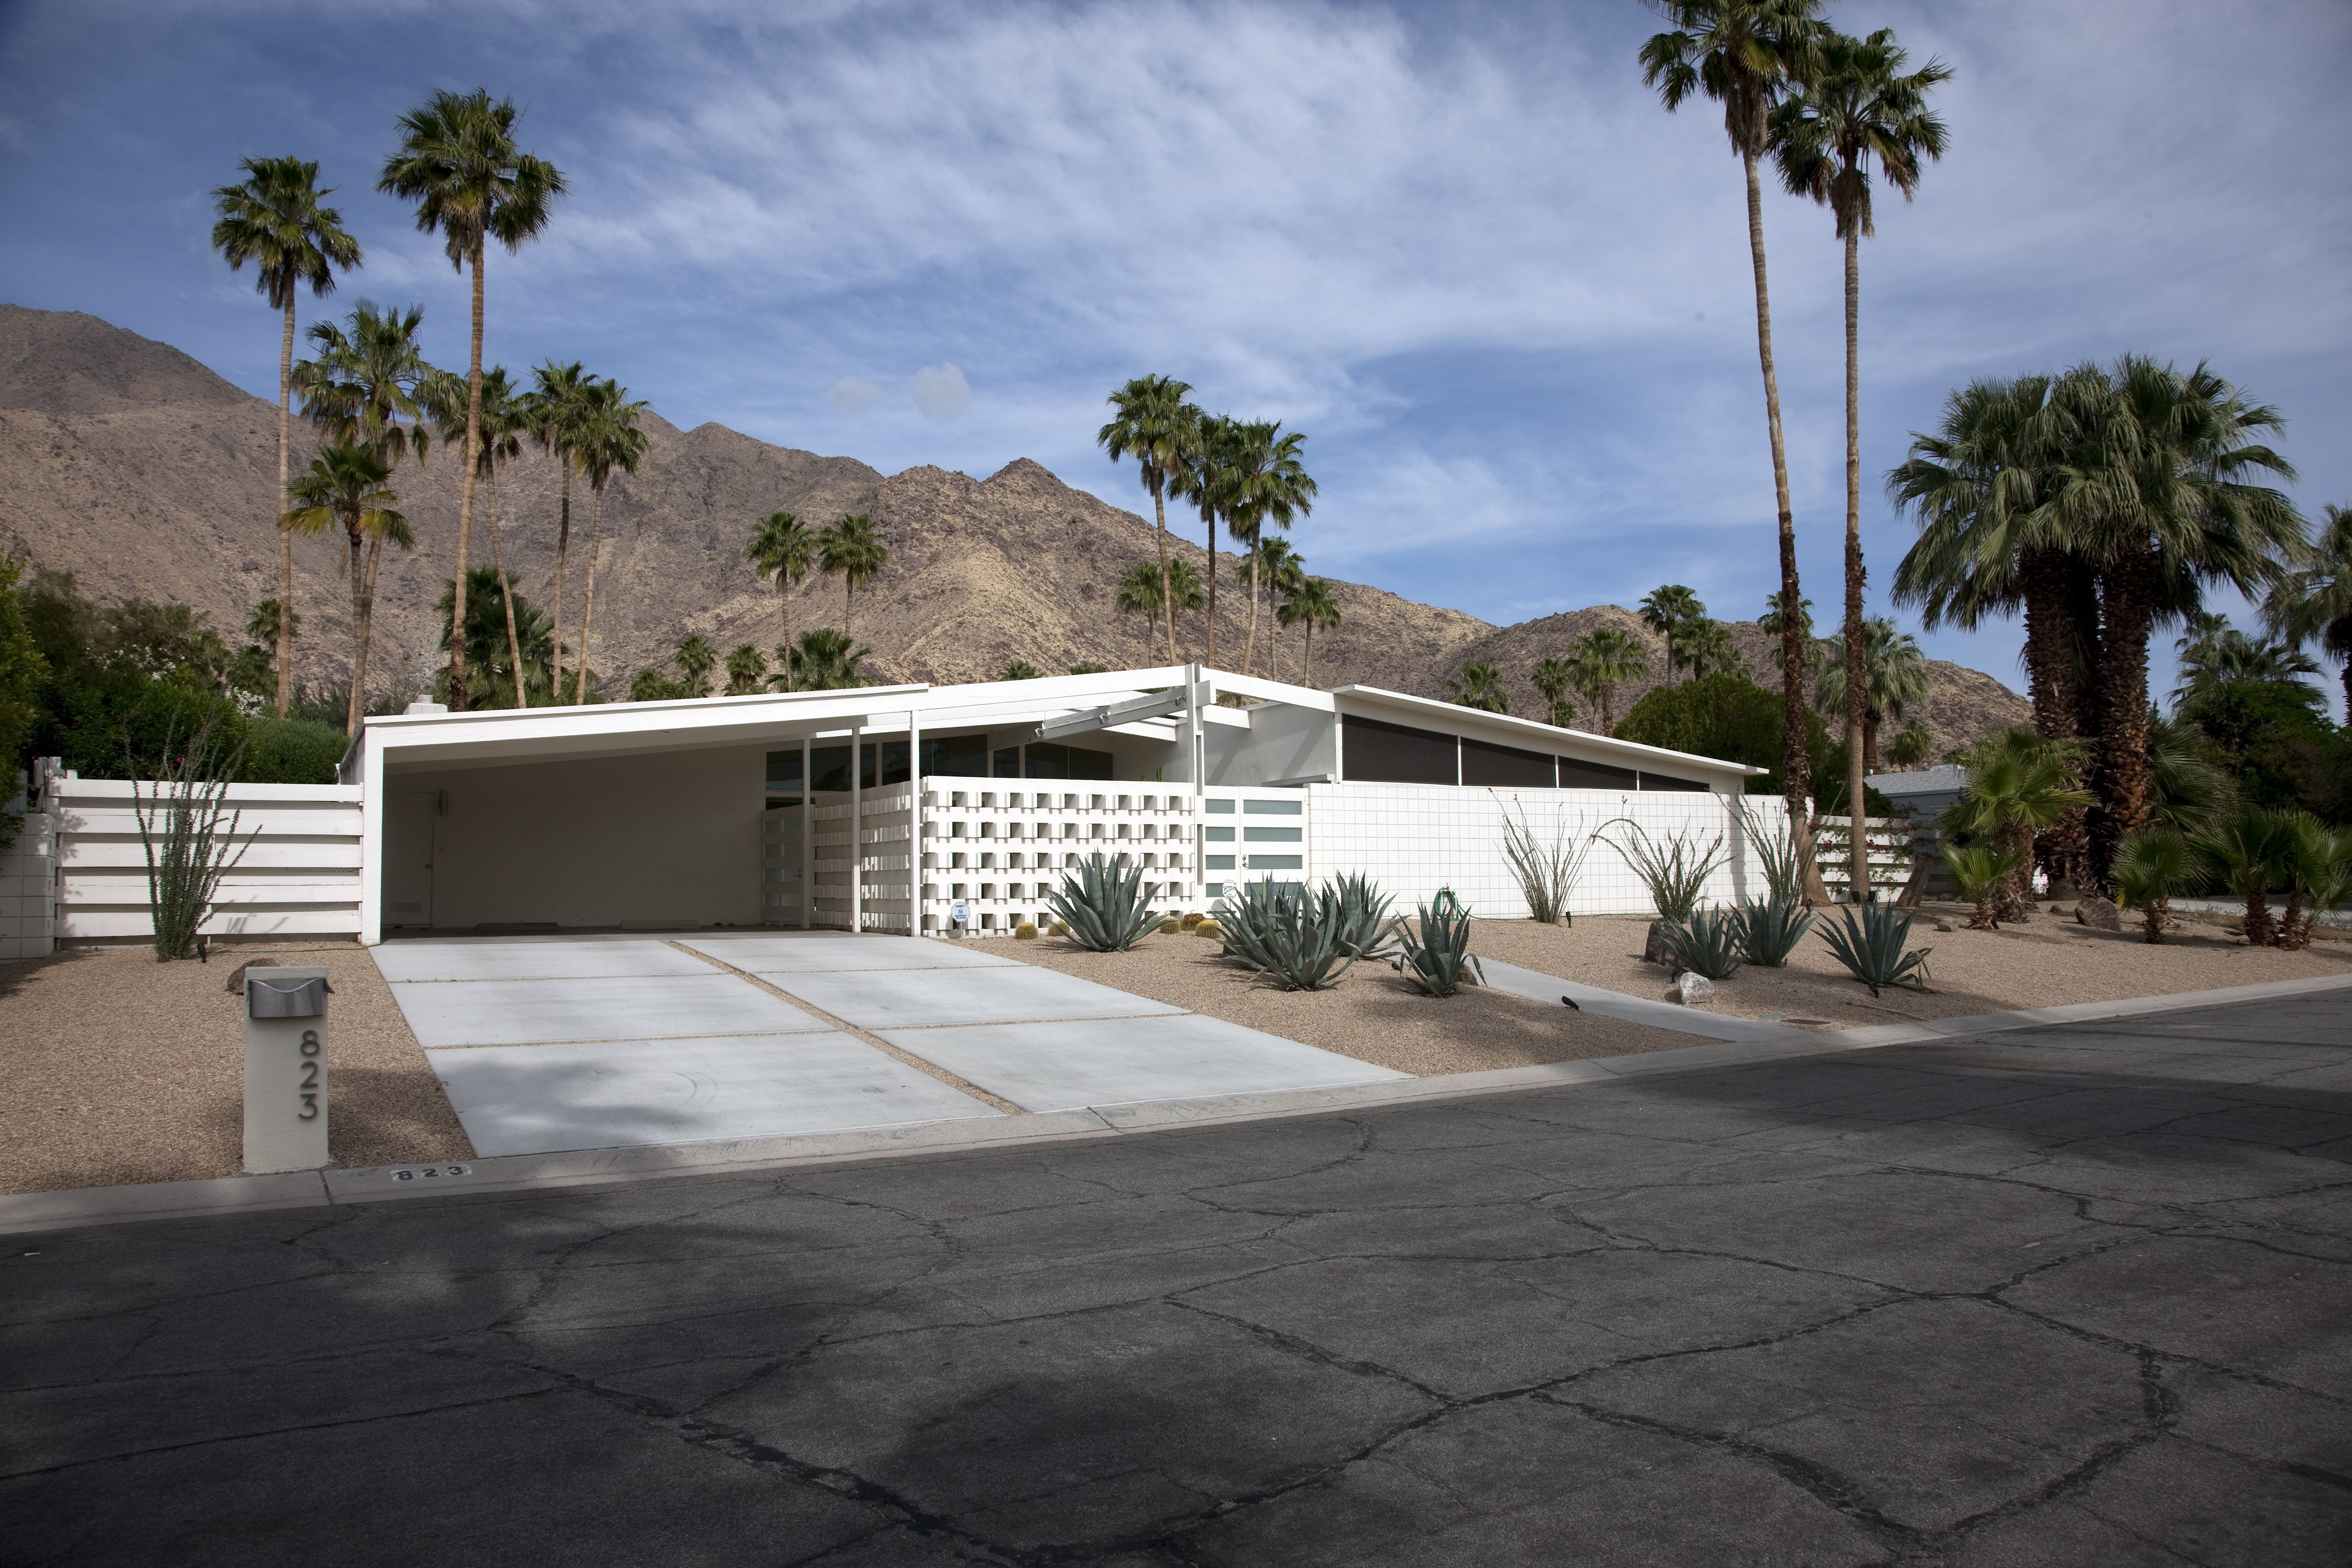 modern, horizontal-oriented white home with open carport, slanted roof, and situated beneath rocky hills